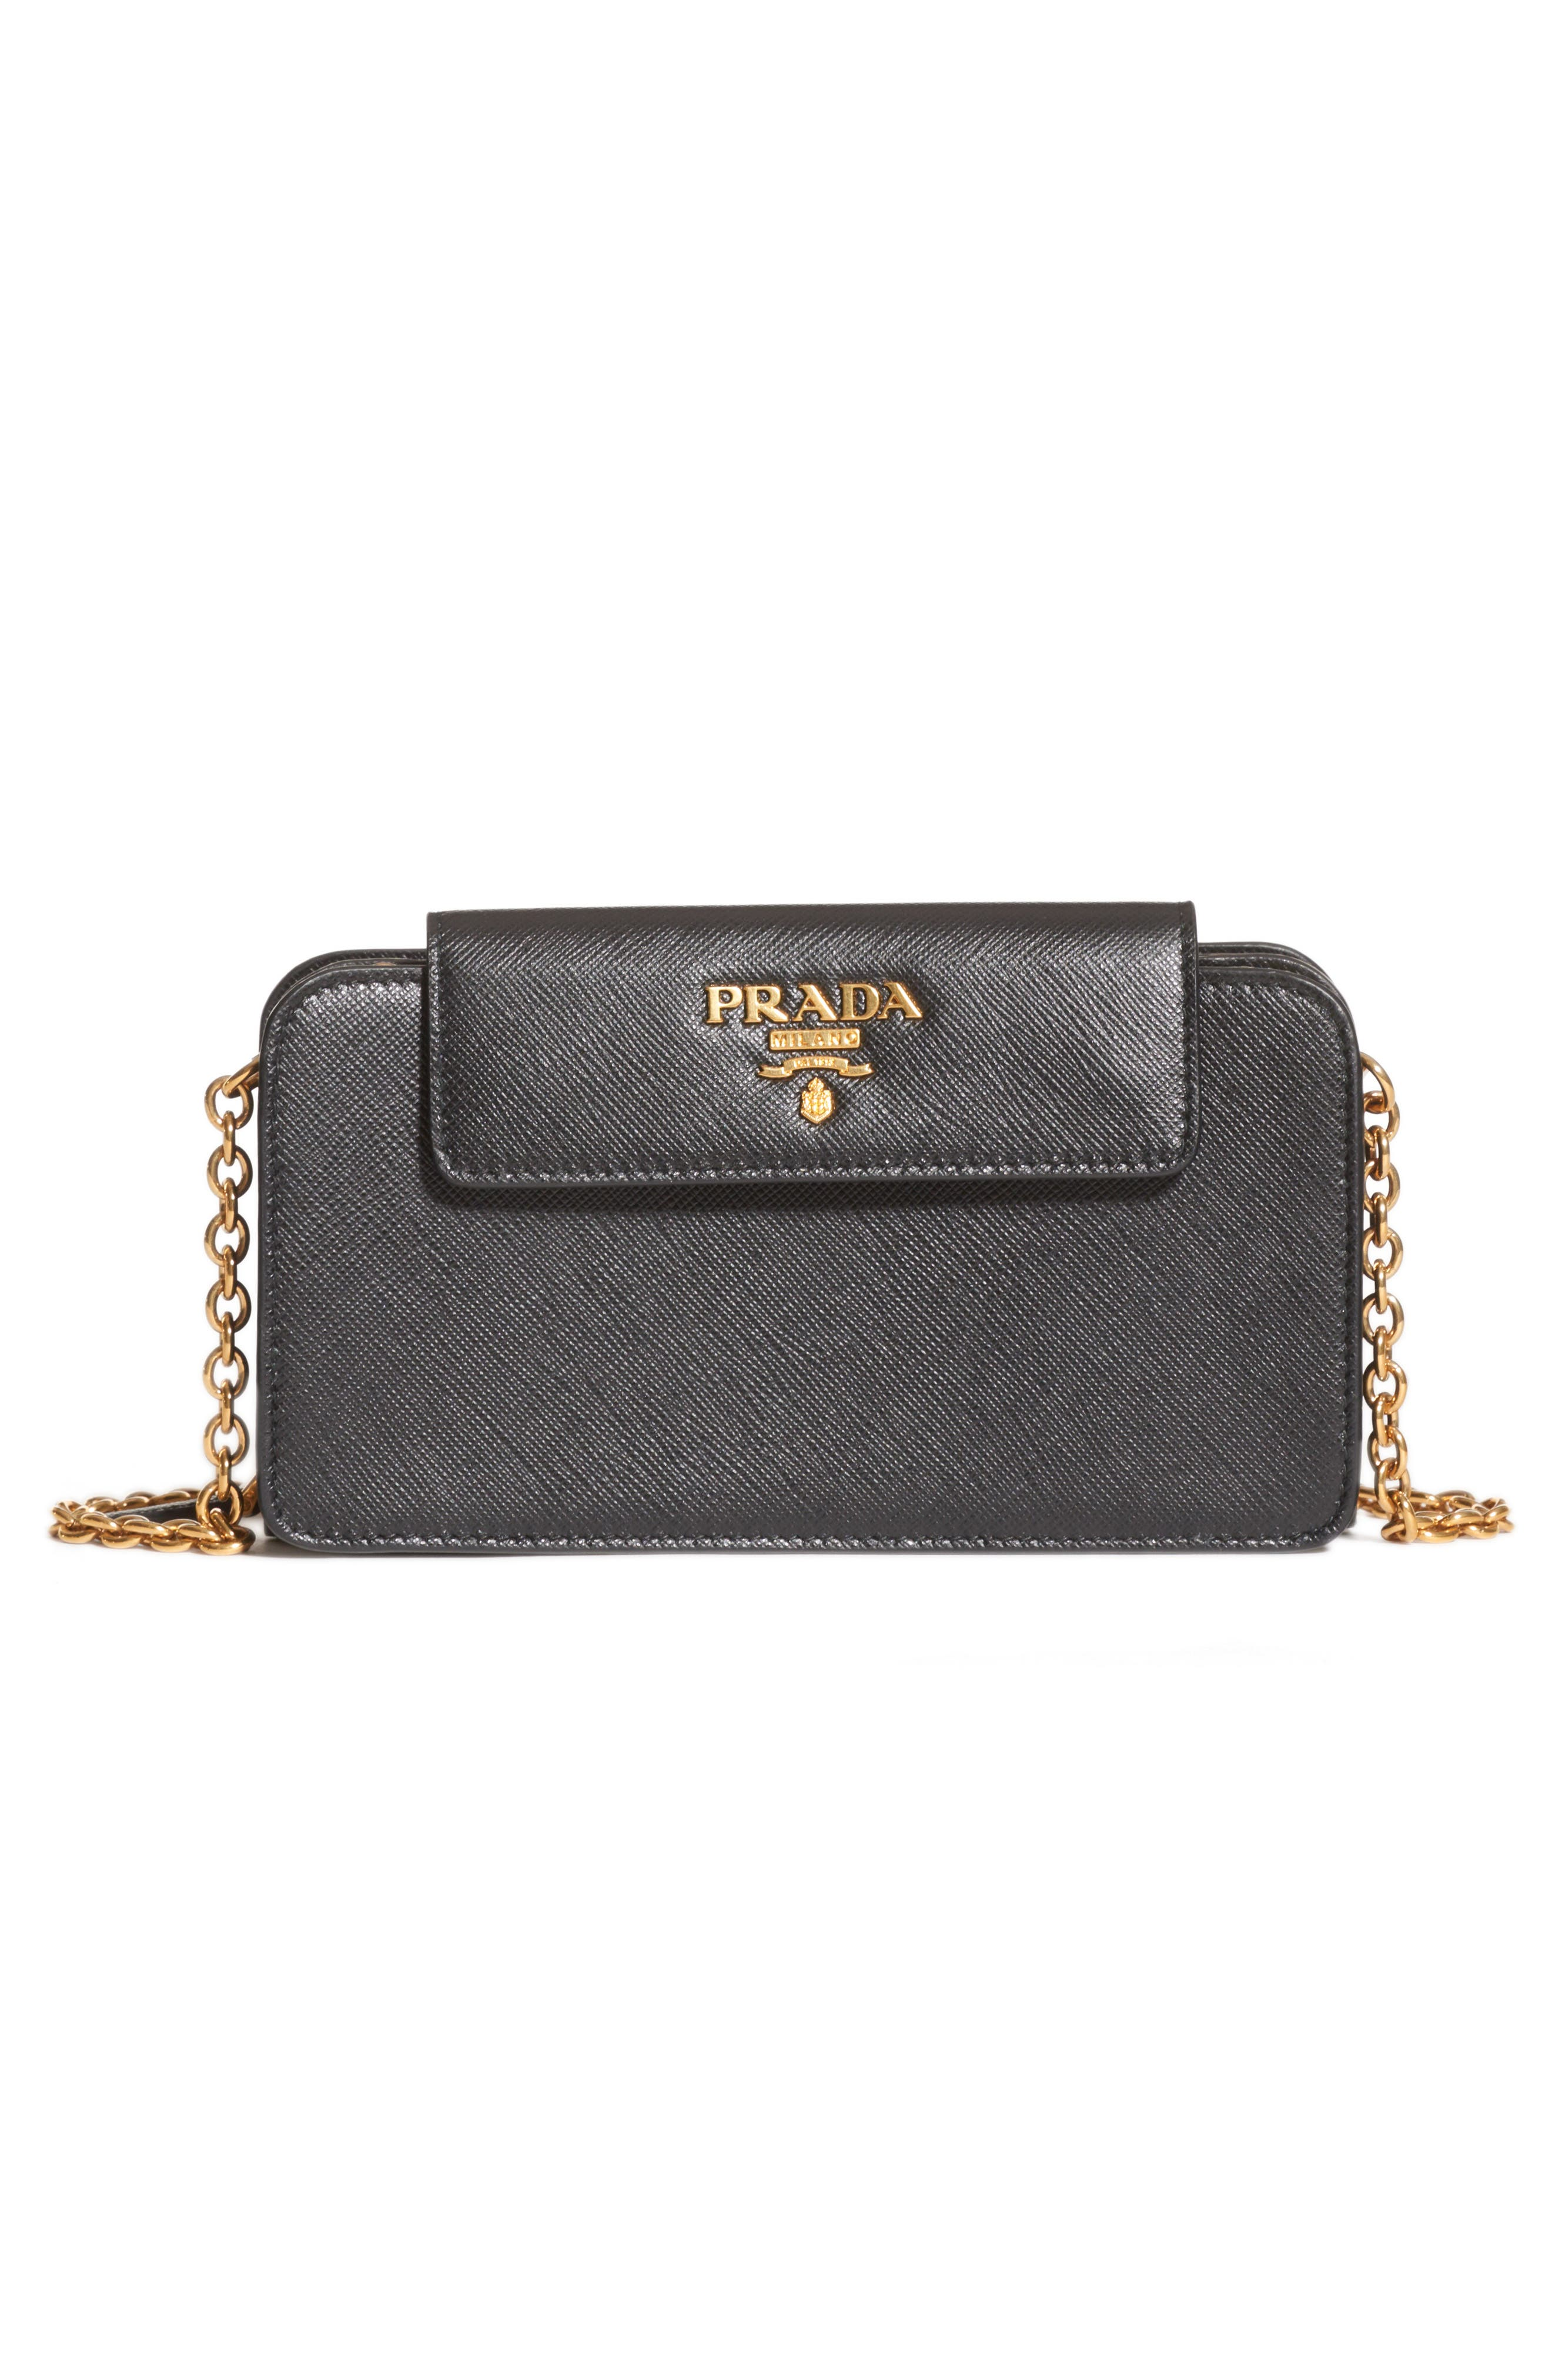 474a75d4bcb6 ... discount code for prada saffiano leather wallet on a chain 1885c ca17a